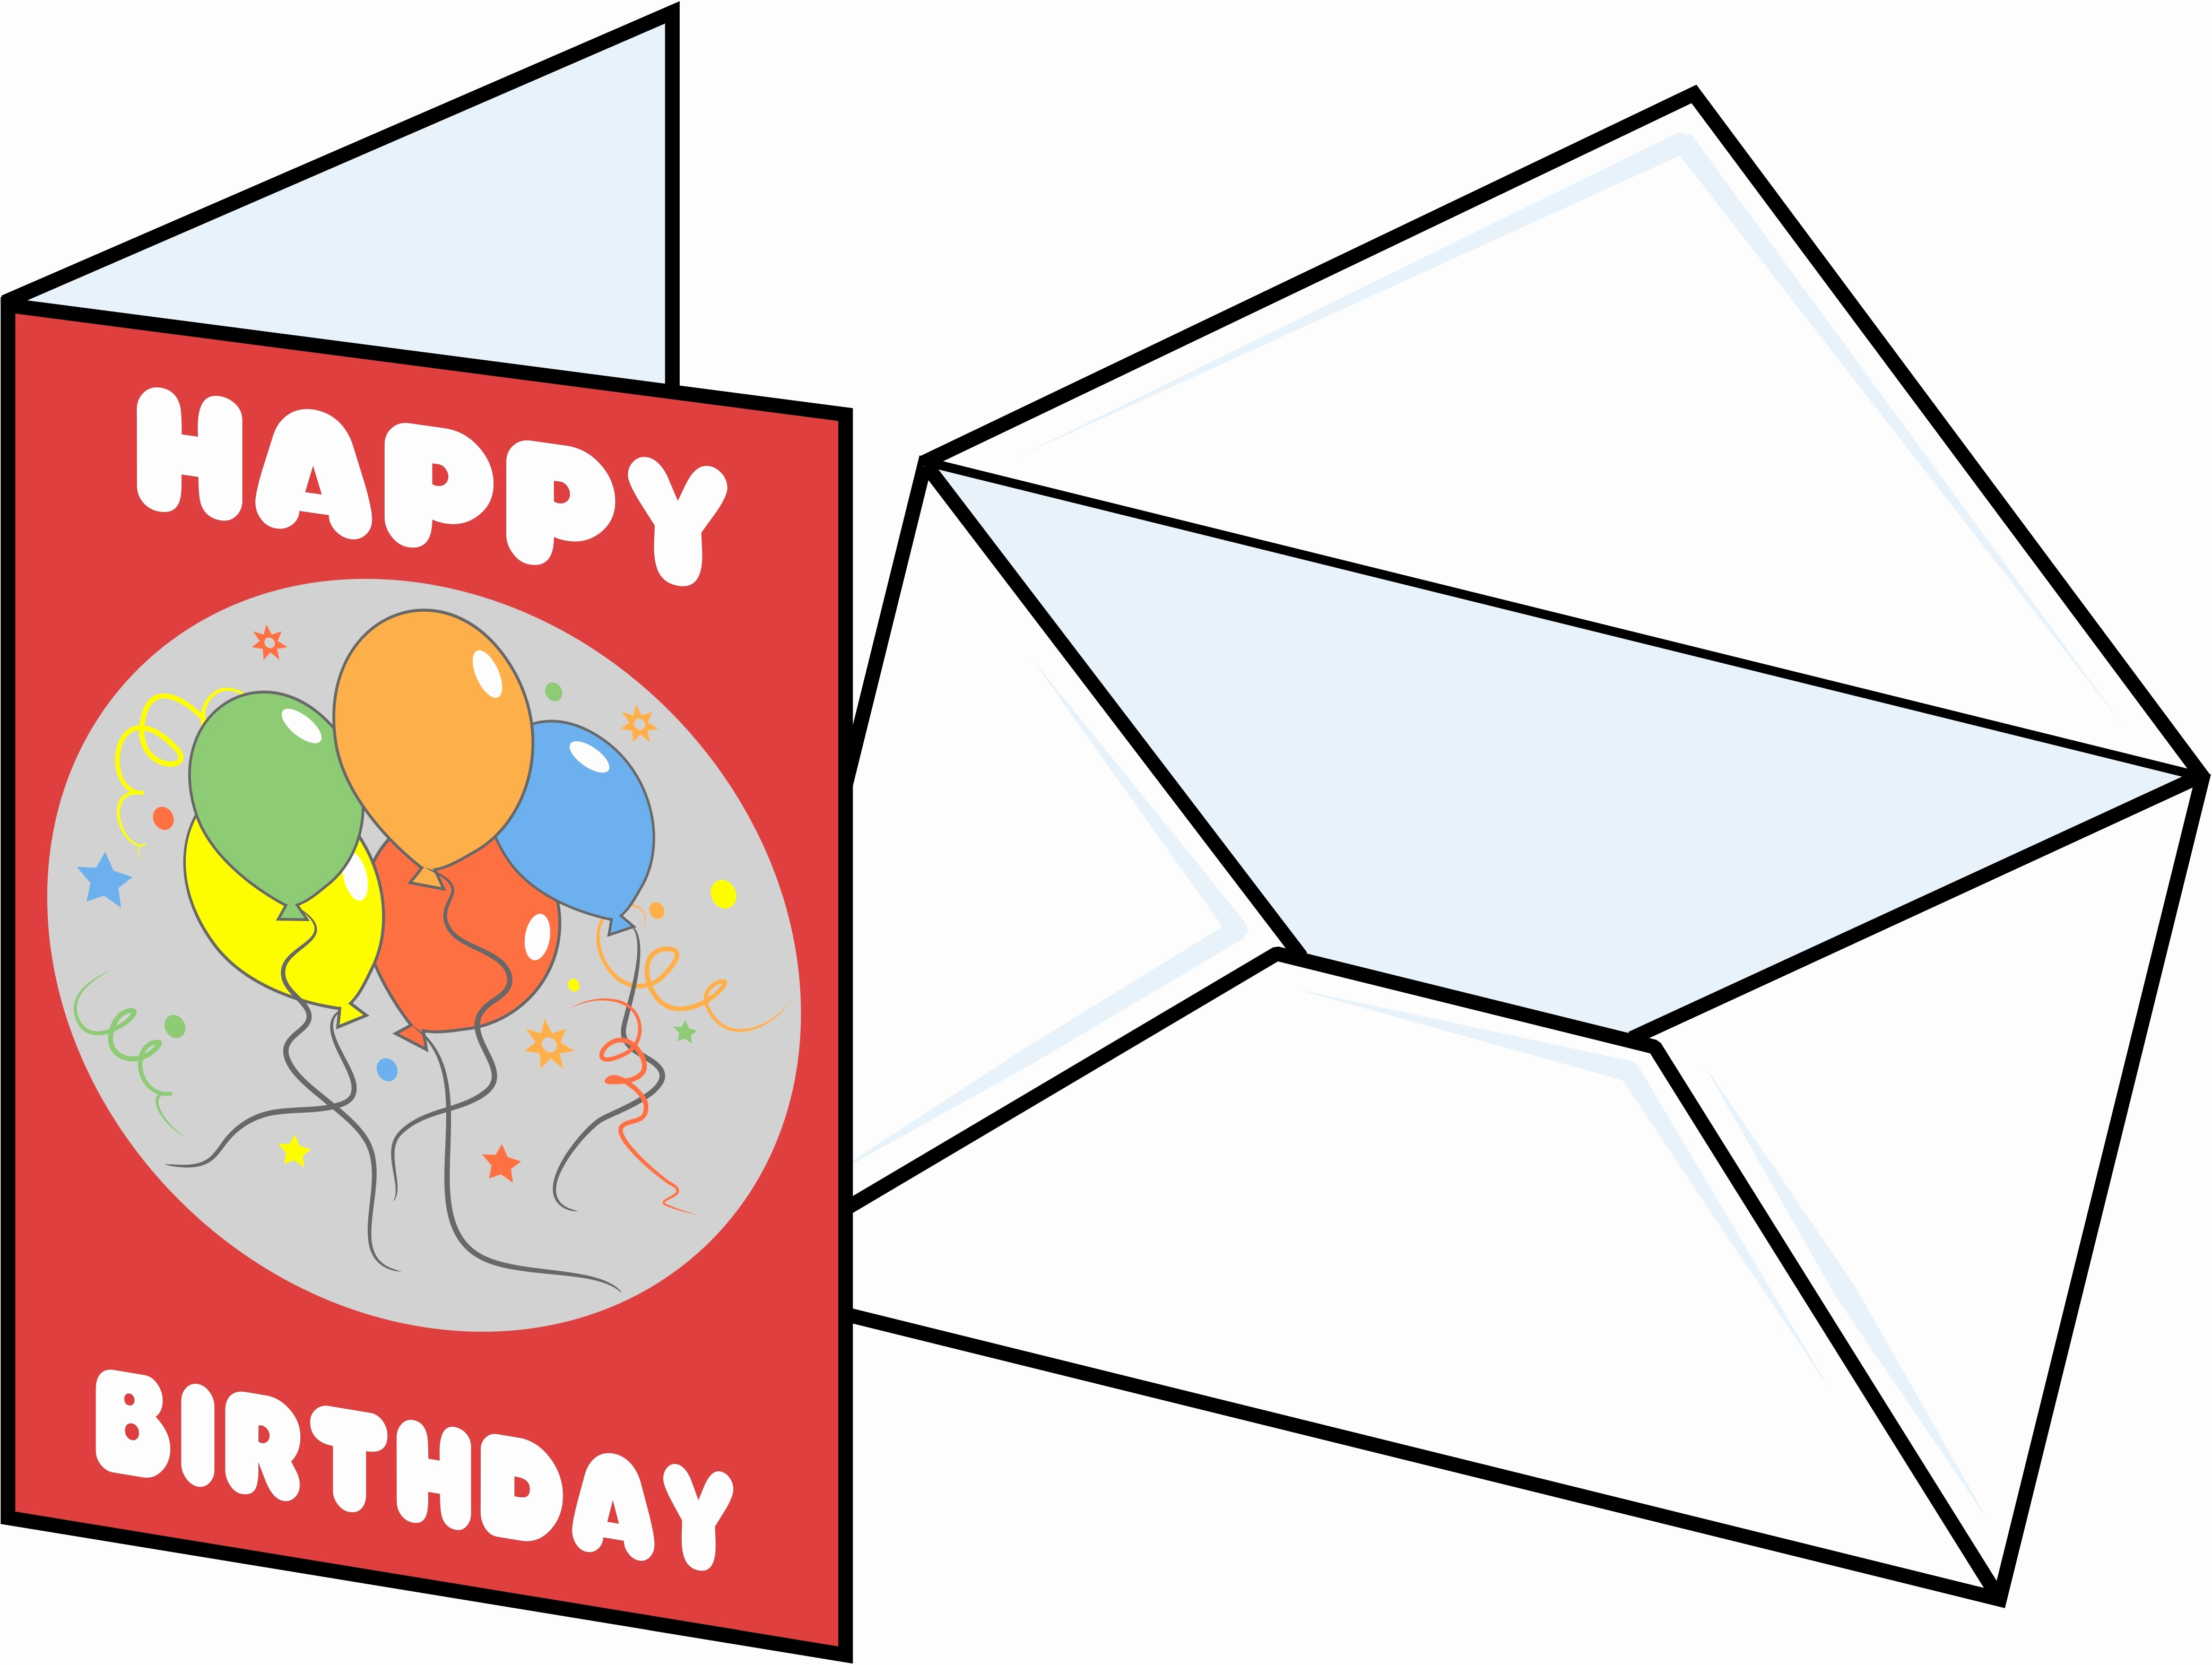 clipart of birthday cards ; librarian-birthday-card-elegant-greeting-card-clipart-free-download-clip-art-of-librarian-birthday-card